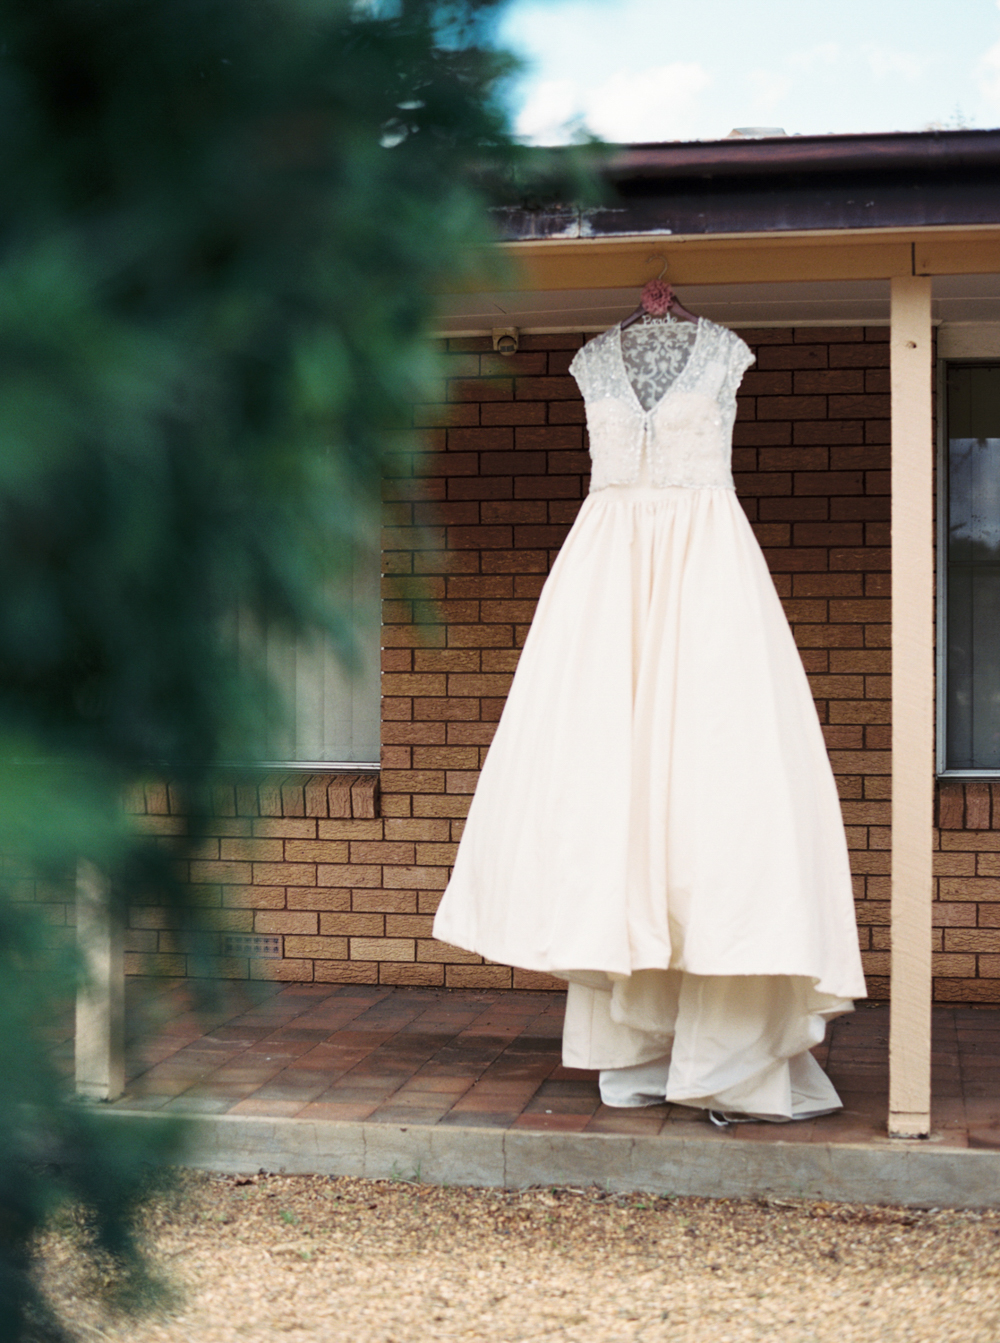 00019- Dubbo NSW Wedding Photographer Sheri McMahon.jpg